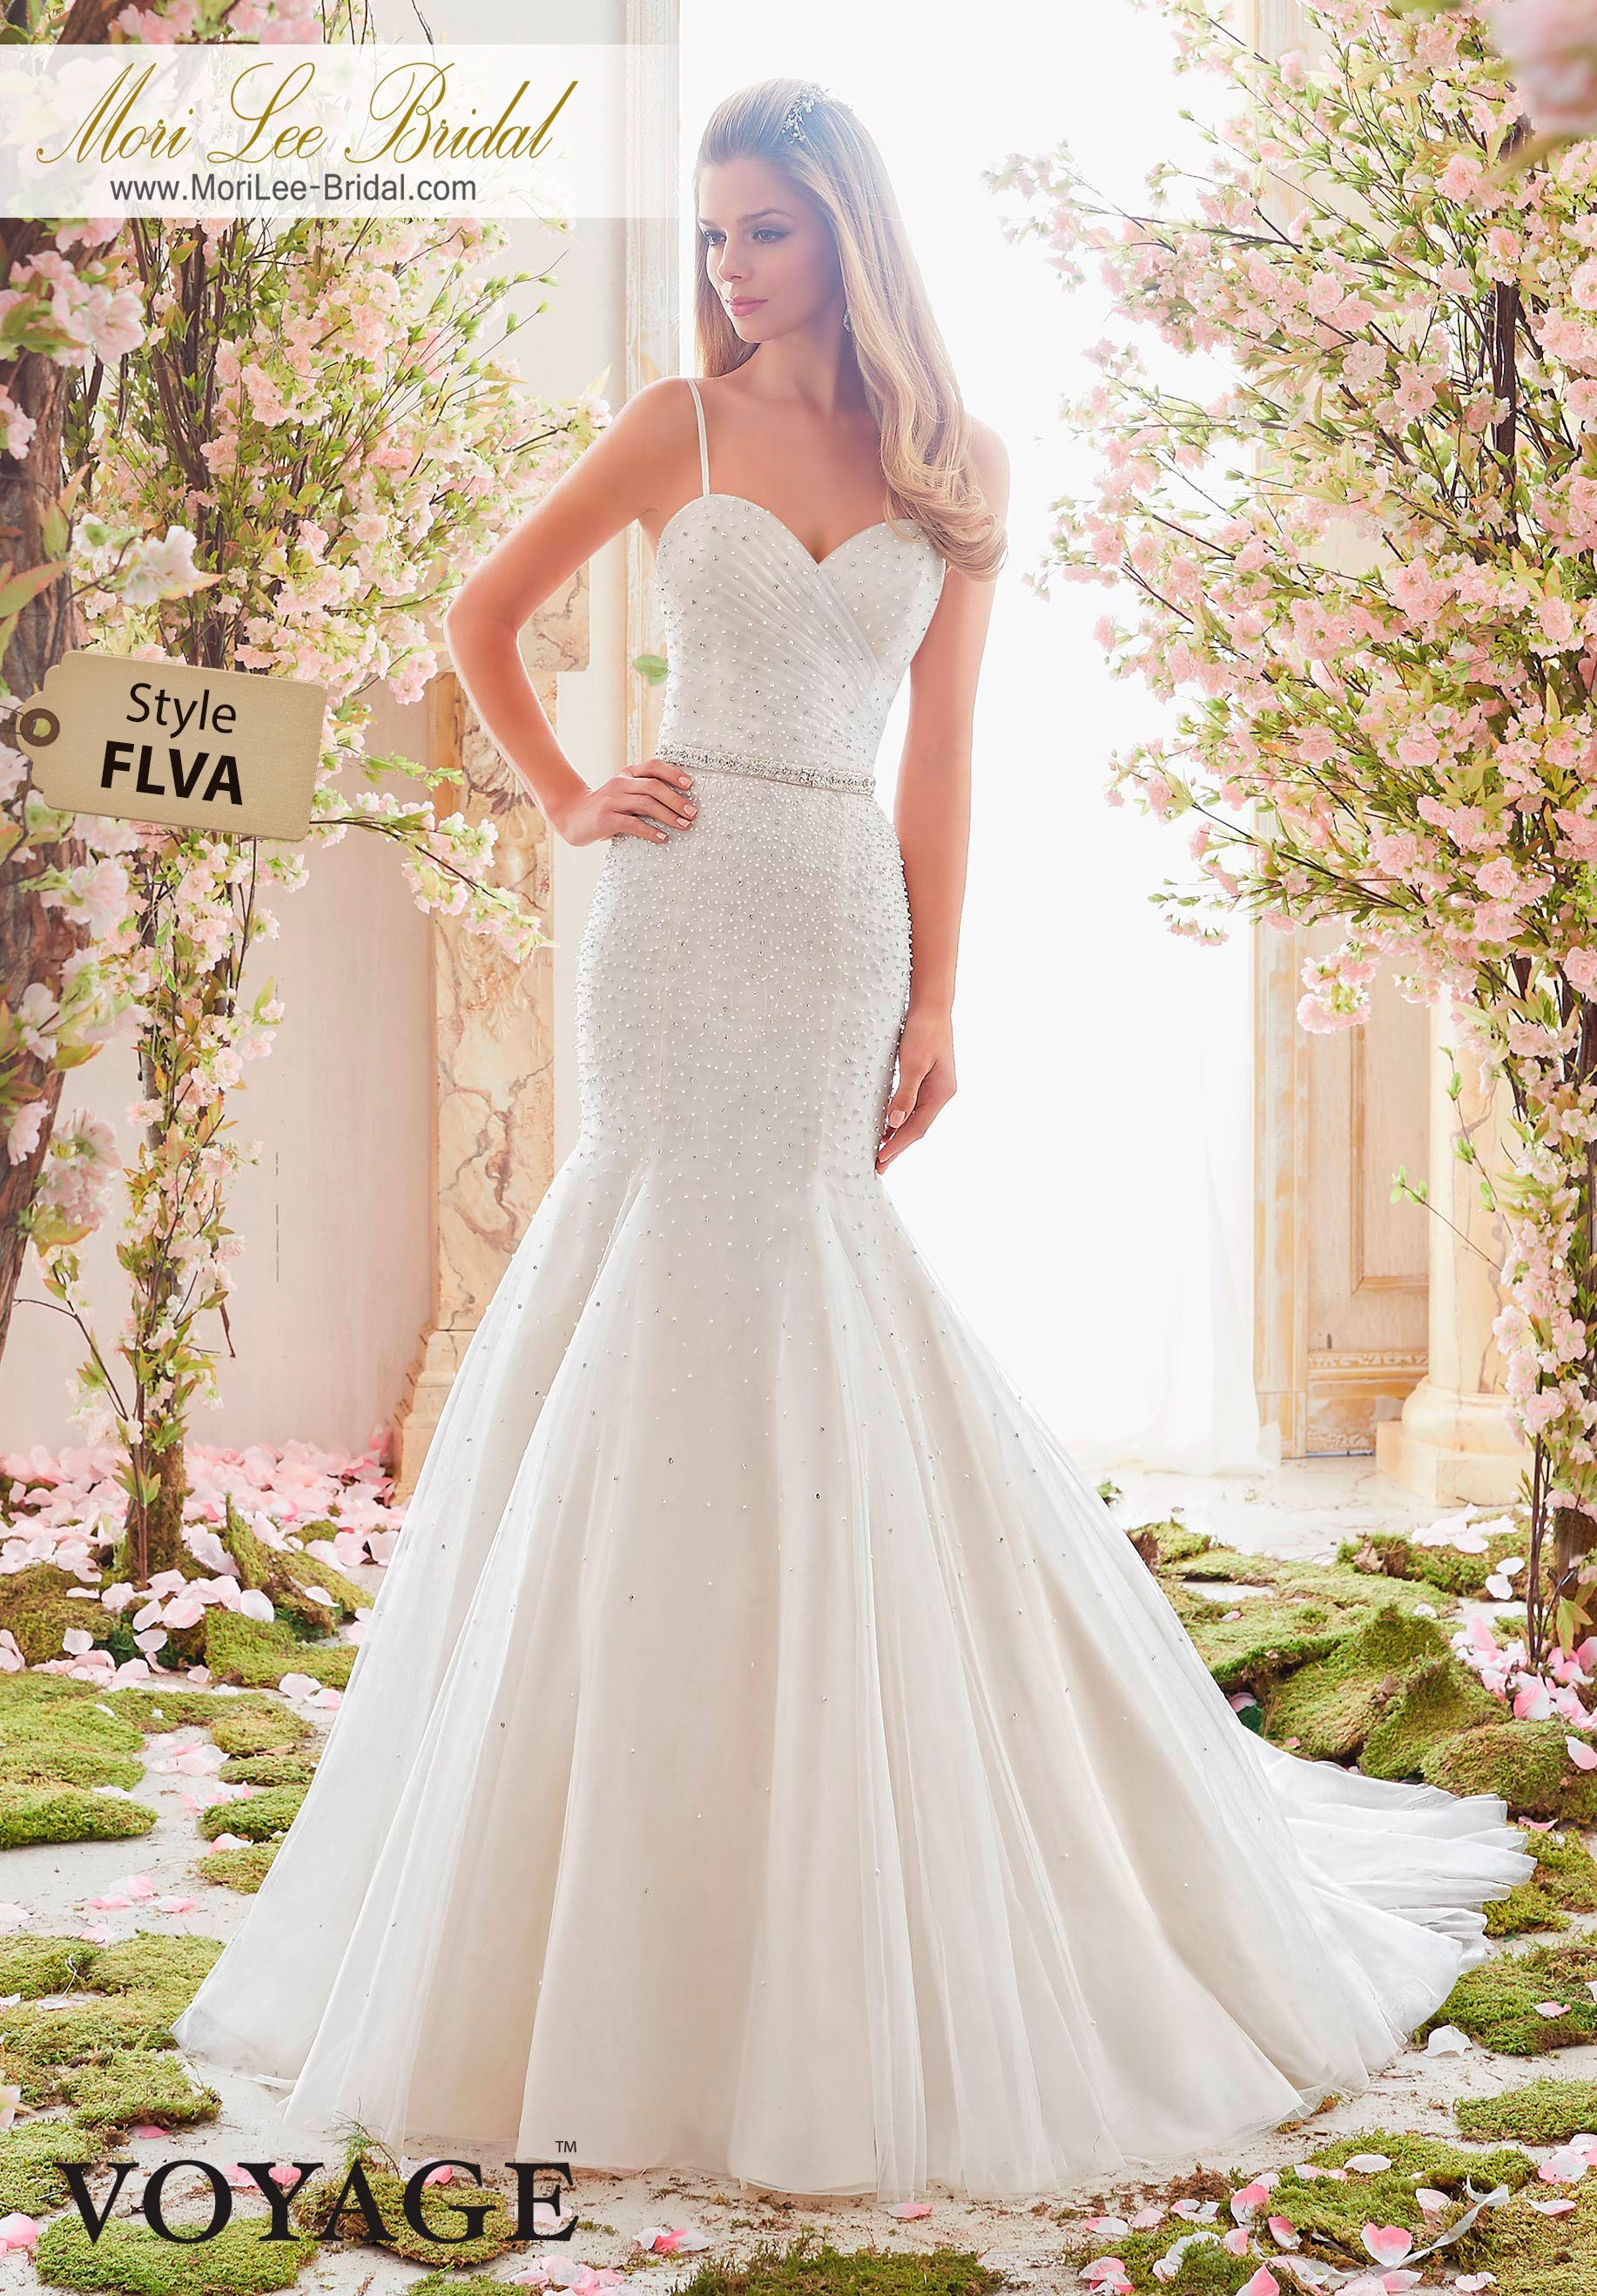 Beaded spaghetti strap wedding dresses  Dress Style FLVA PEARL AND CRYSTAL BEADING ON SOFT TULLE Removable